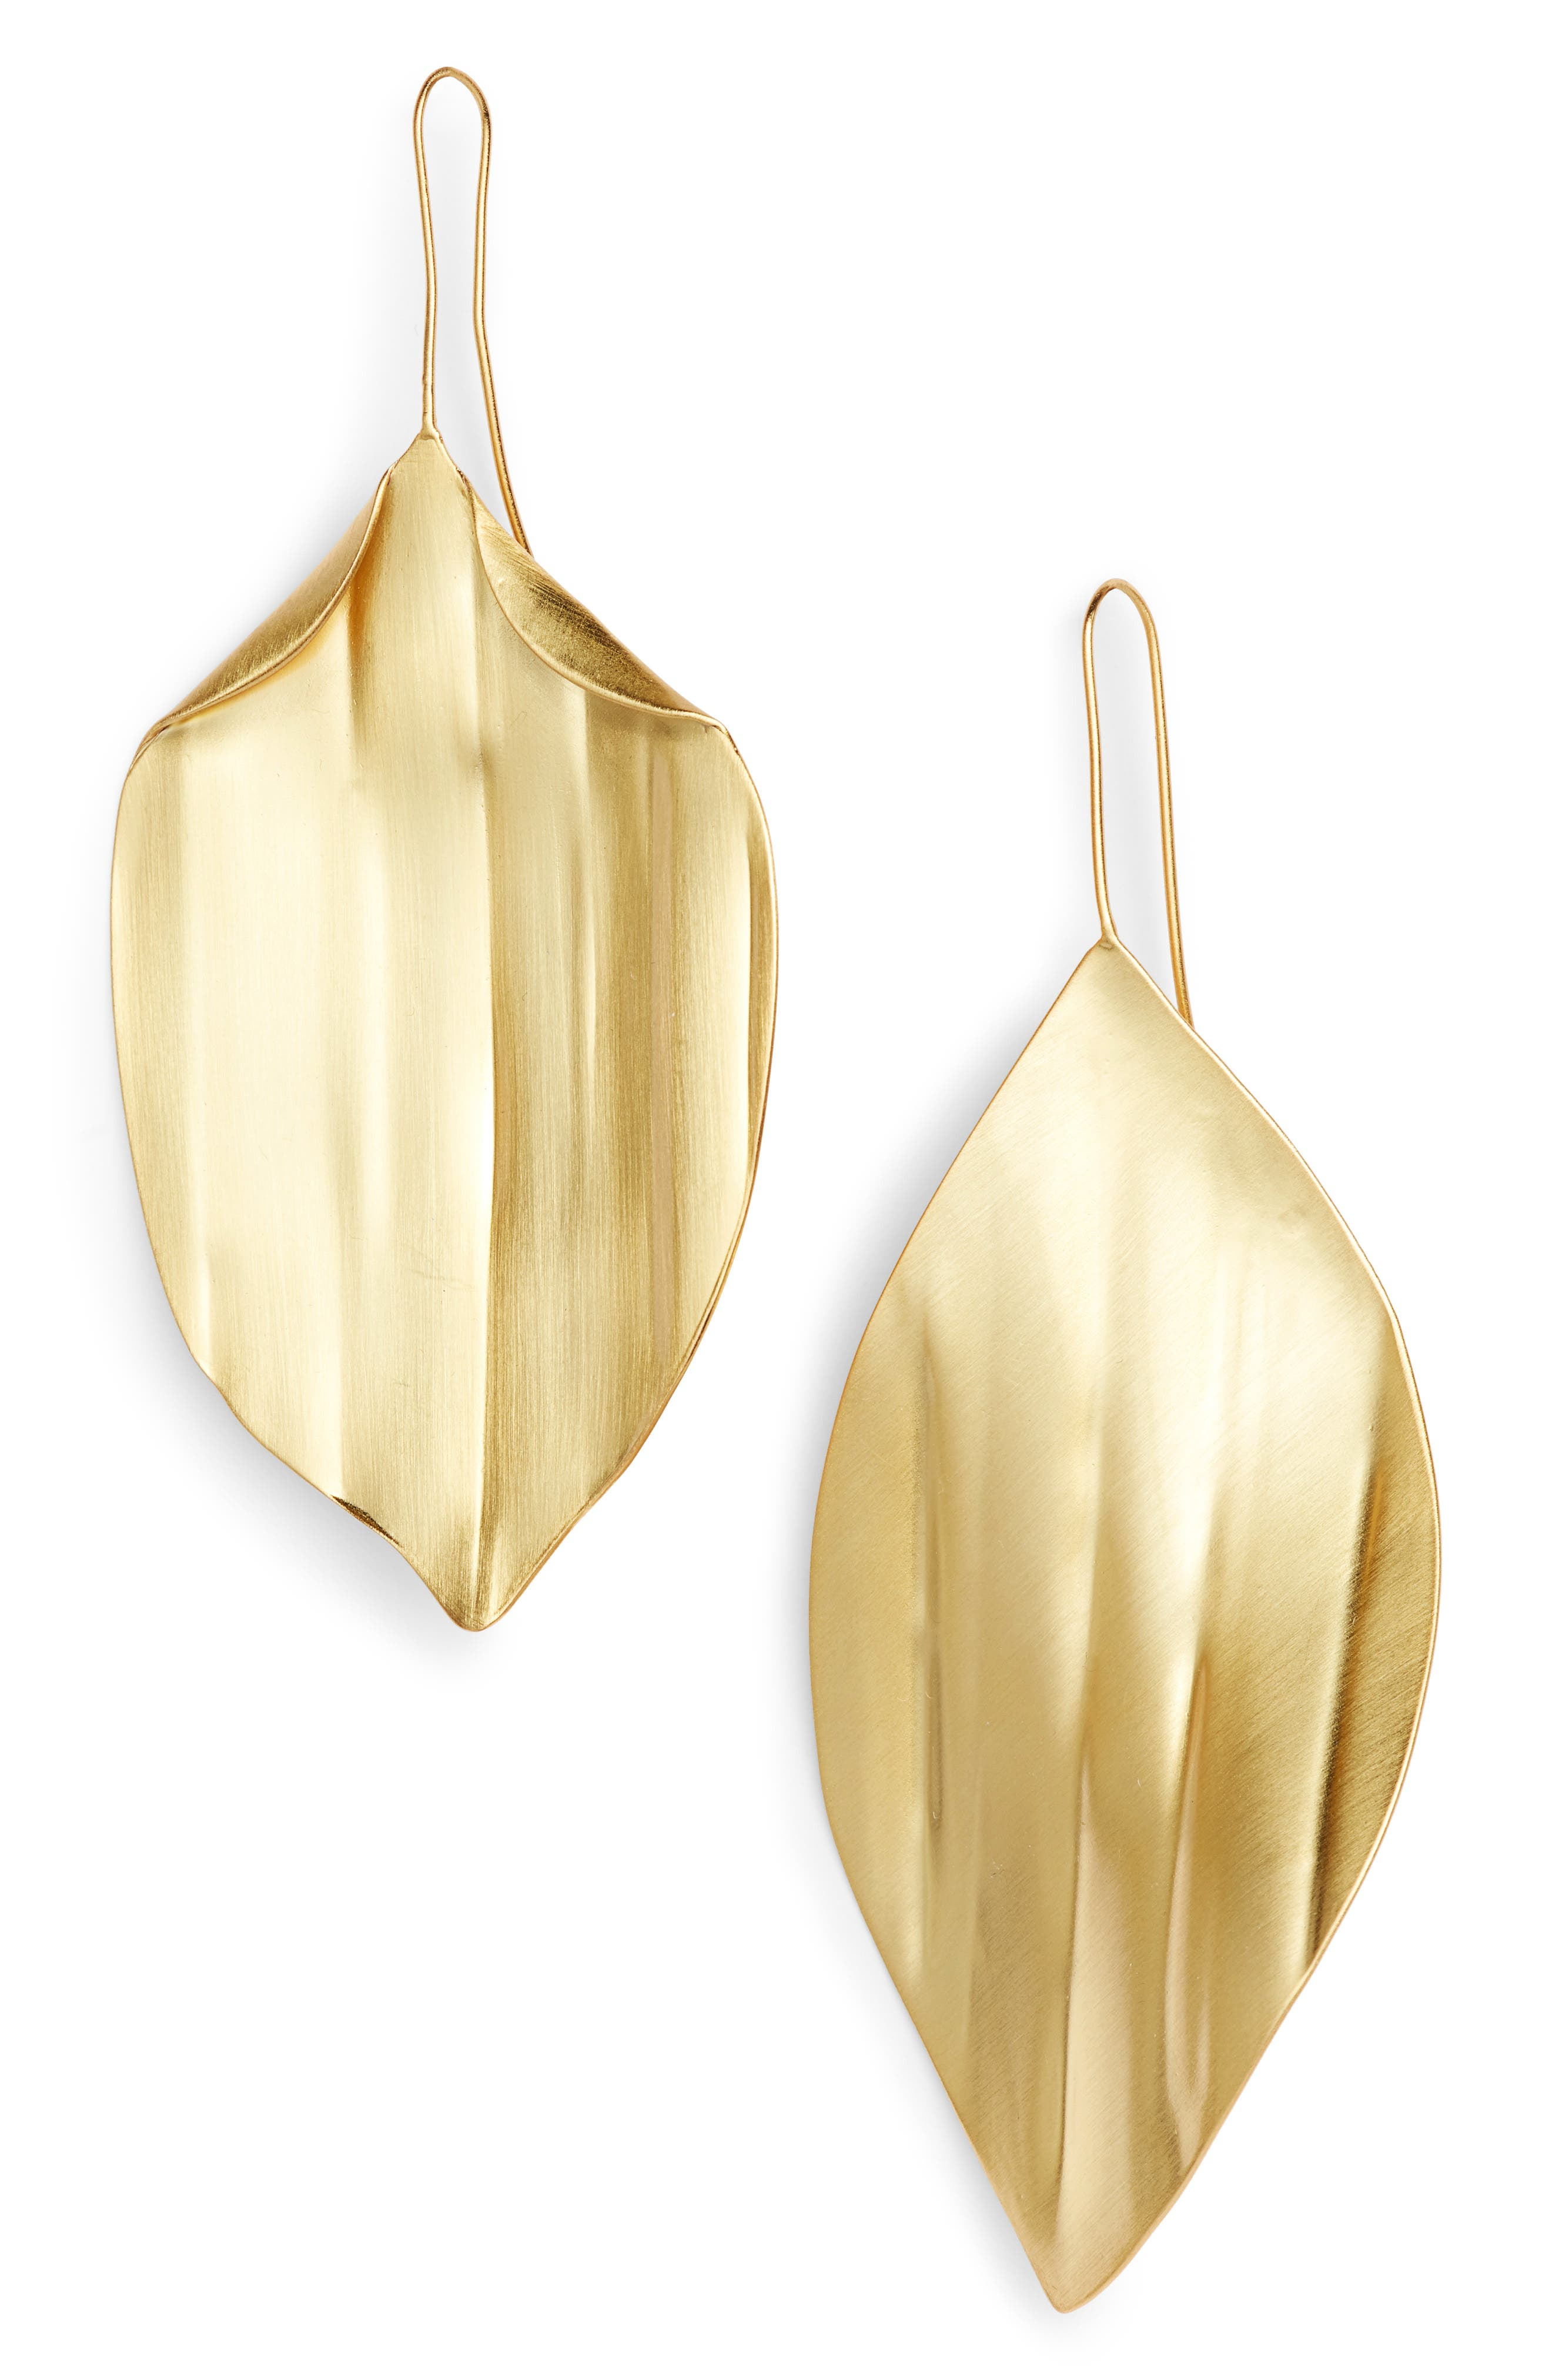 Mismatched Leaf Earrings,                         Main,                         color, Shiny Brass